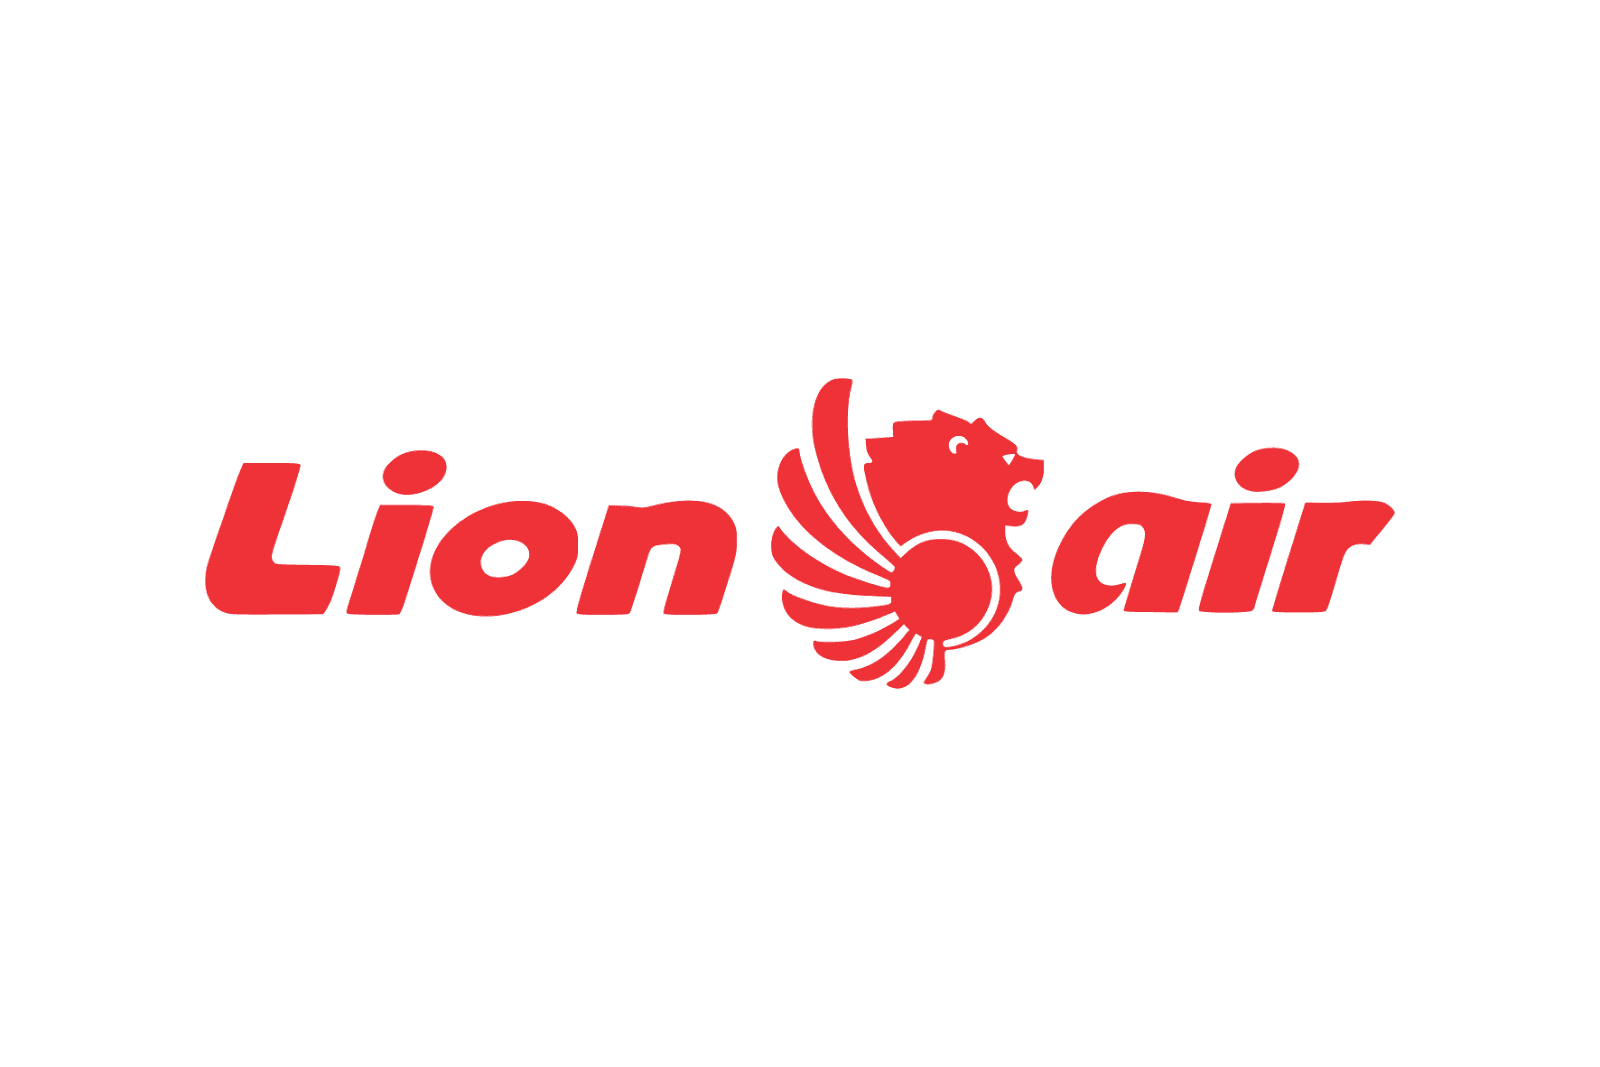 Lion Air Indonesia Kupon & Diskon 2017